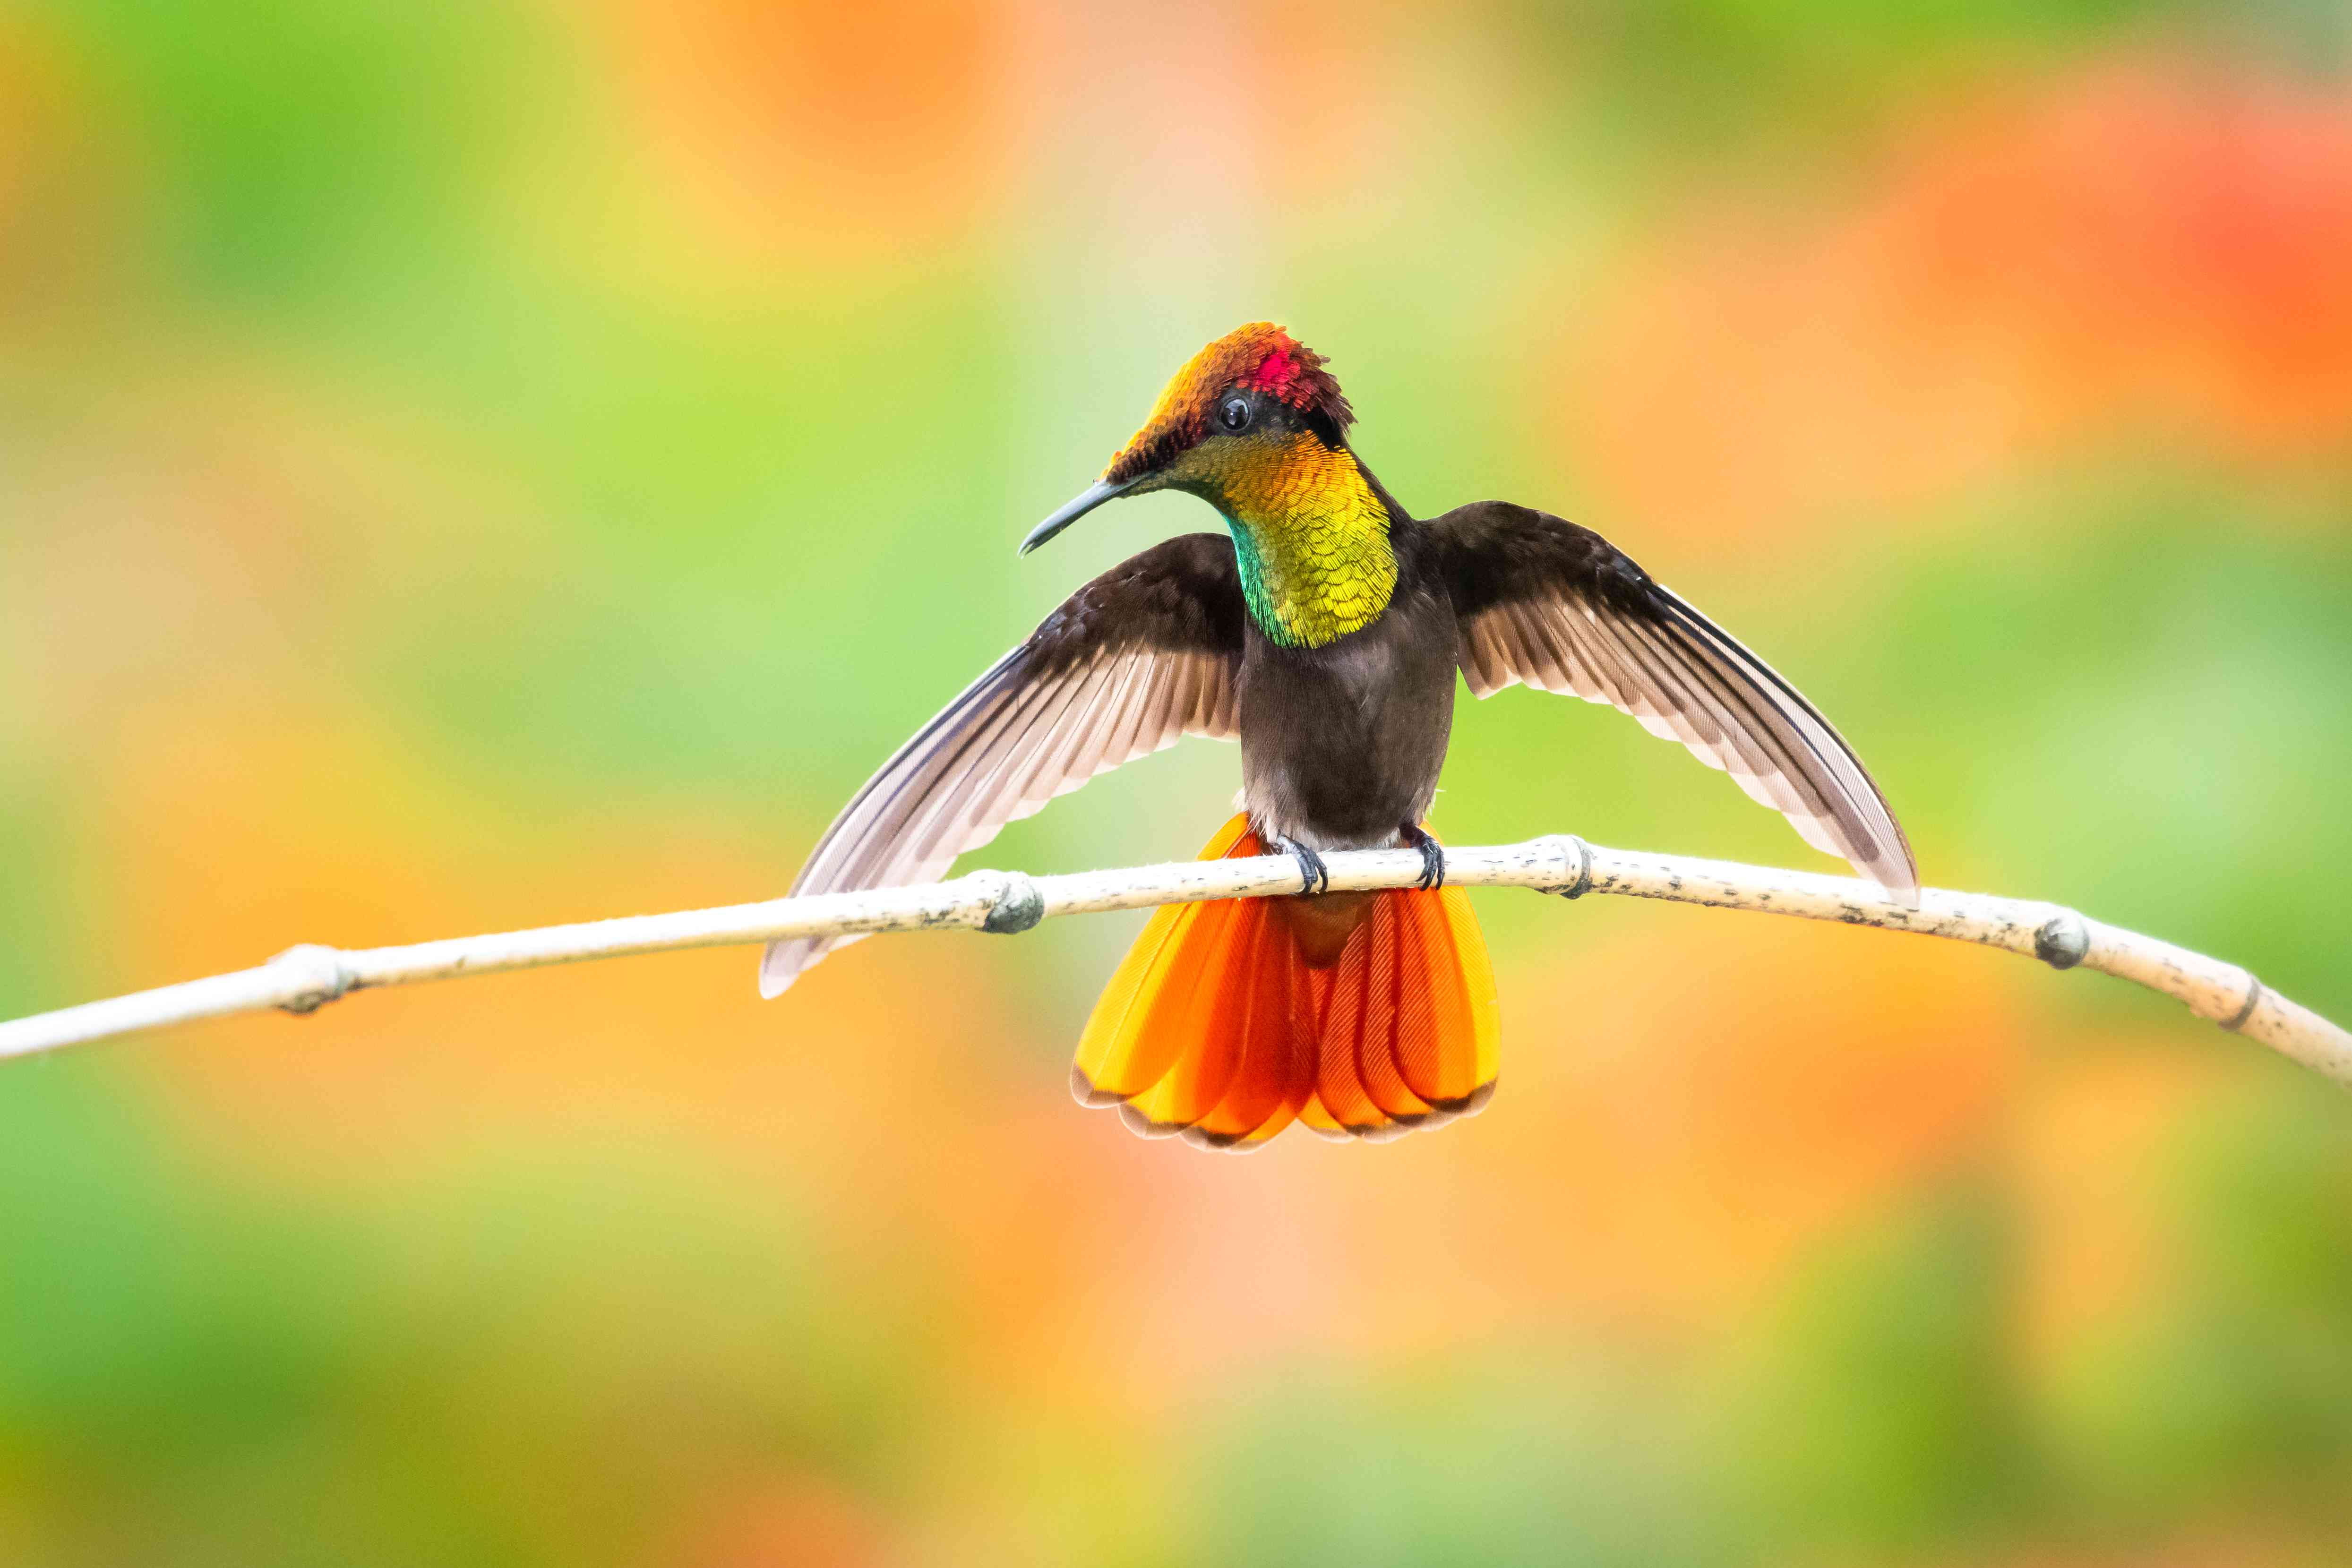 Ruby Topaz hummingbird with wings spread on a branch